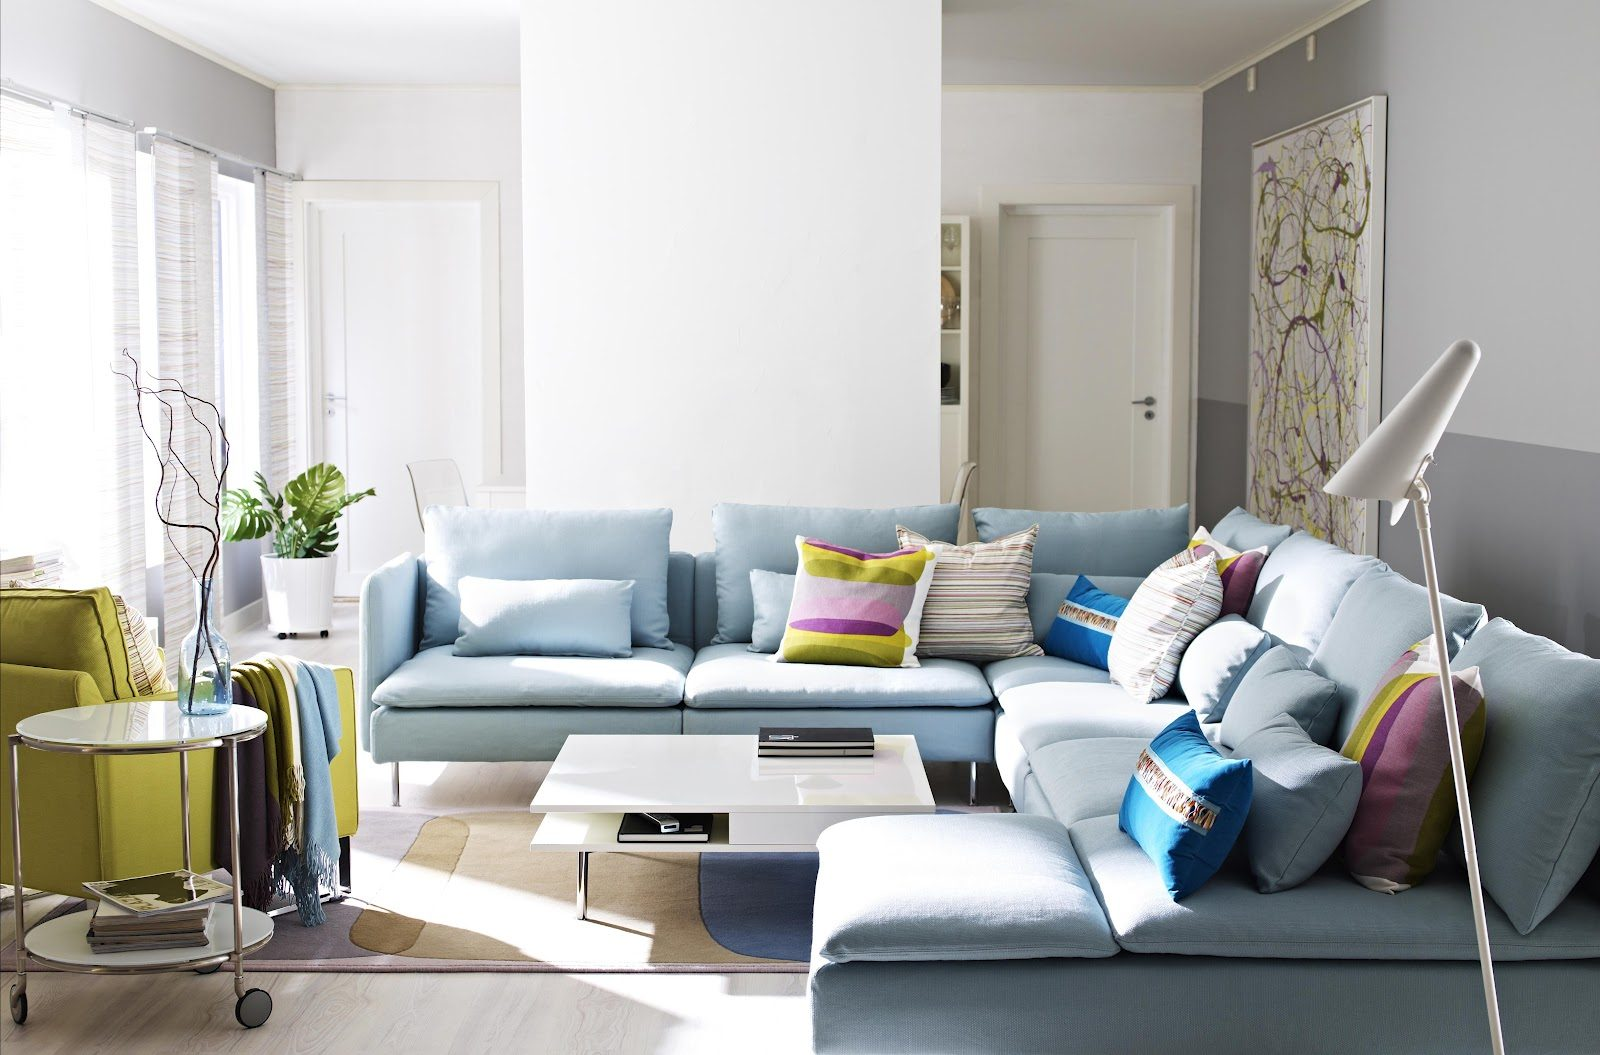 Ikea 2013 catalog preview skimbaco lifestyle online - Sofa para salon ...